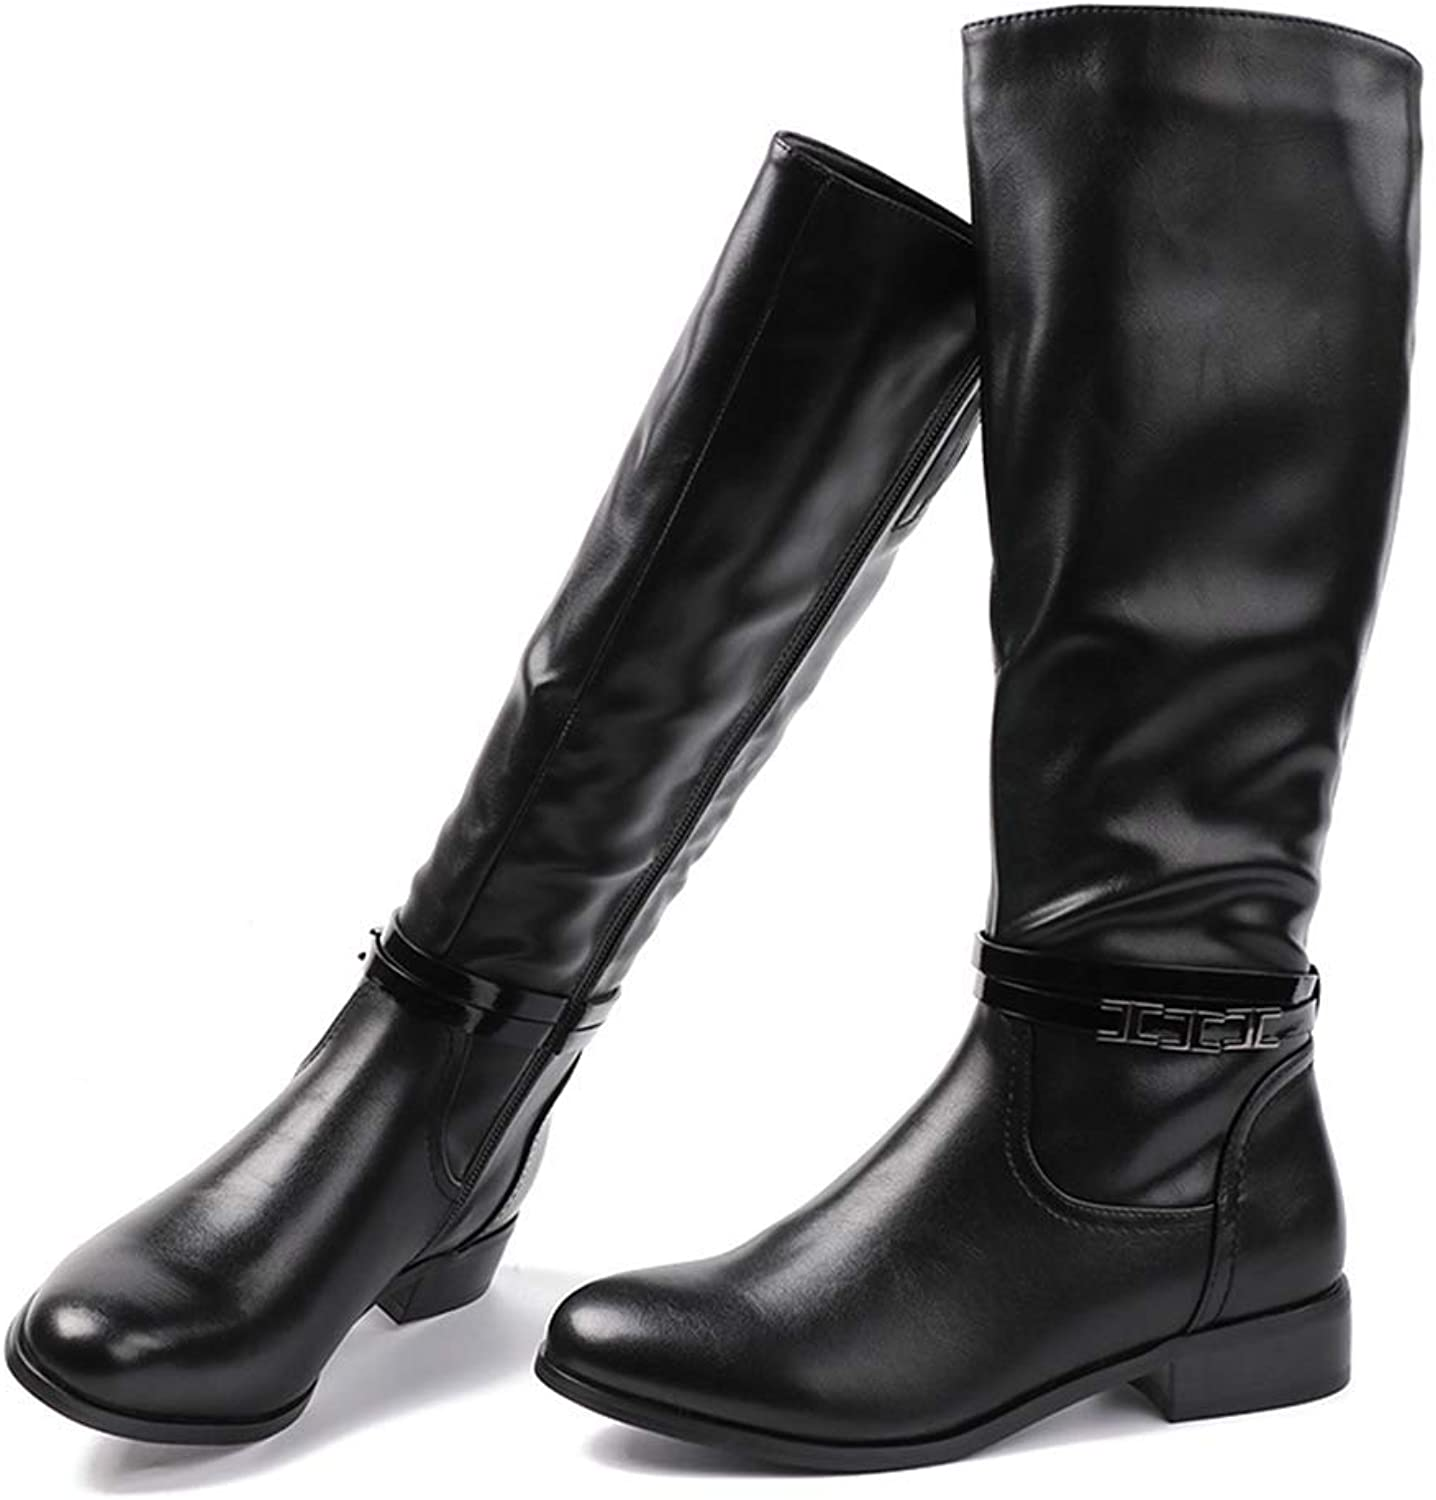 Gcanwea Fashion Ladies Soft Leather Boots Woman Black Zip Warm Fur Thigh High Boots Winter Knee High Boots Leather Joker Comfortable Rubber Sole Dress Sexy Fashion Dexterous Sweet Black 7 M US Boots